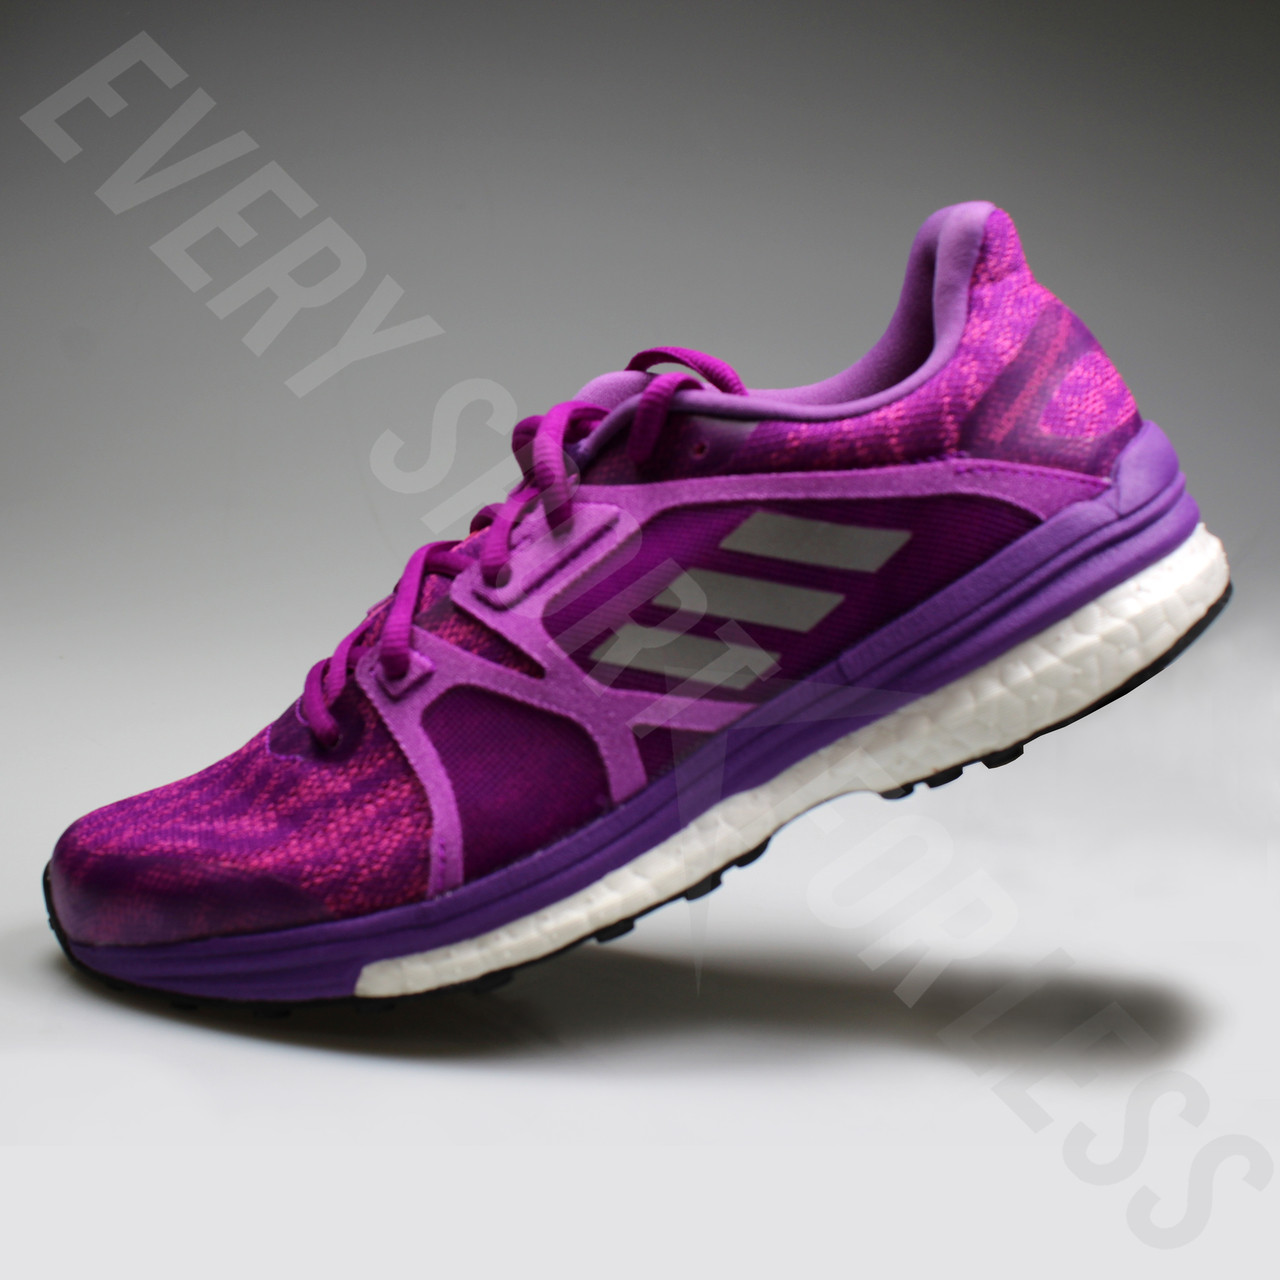 dc29b26acd4 ... Adidas Supernova Sequence 9 Women s Running Shoes AQ3548 - Purple ...